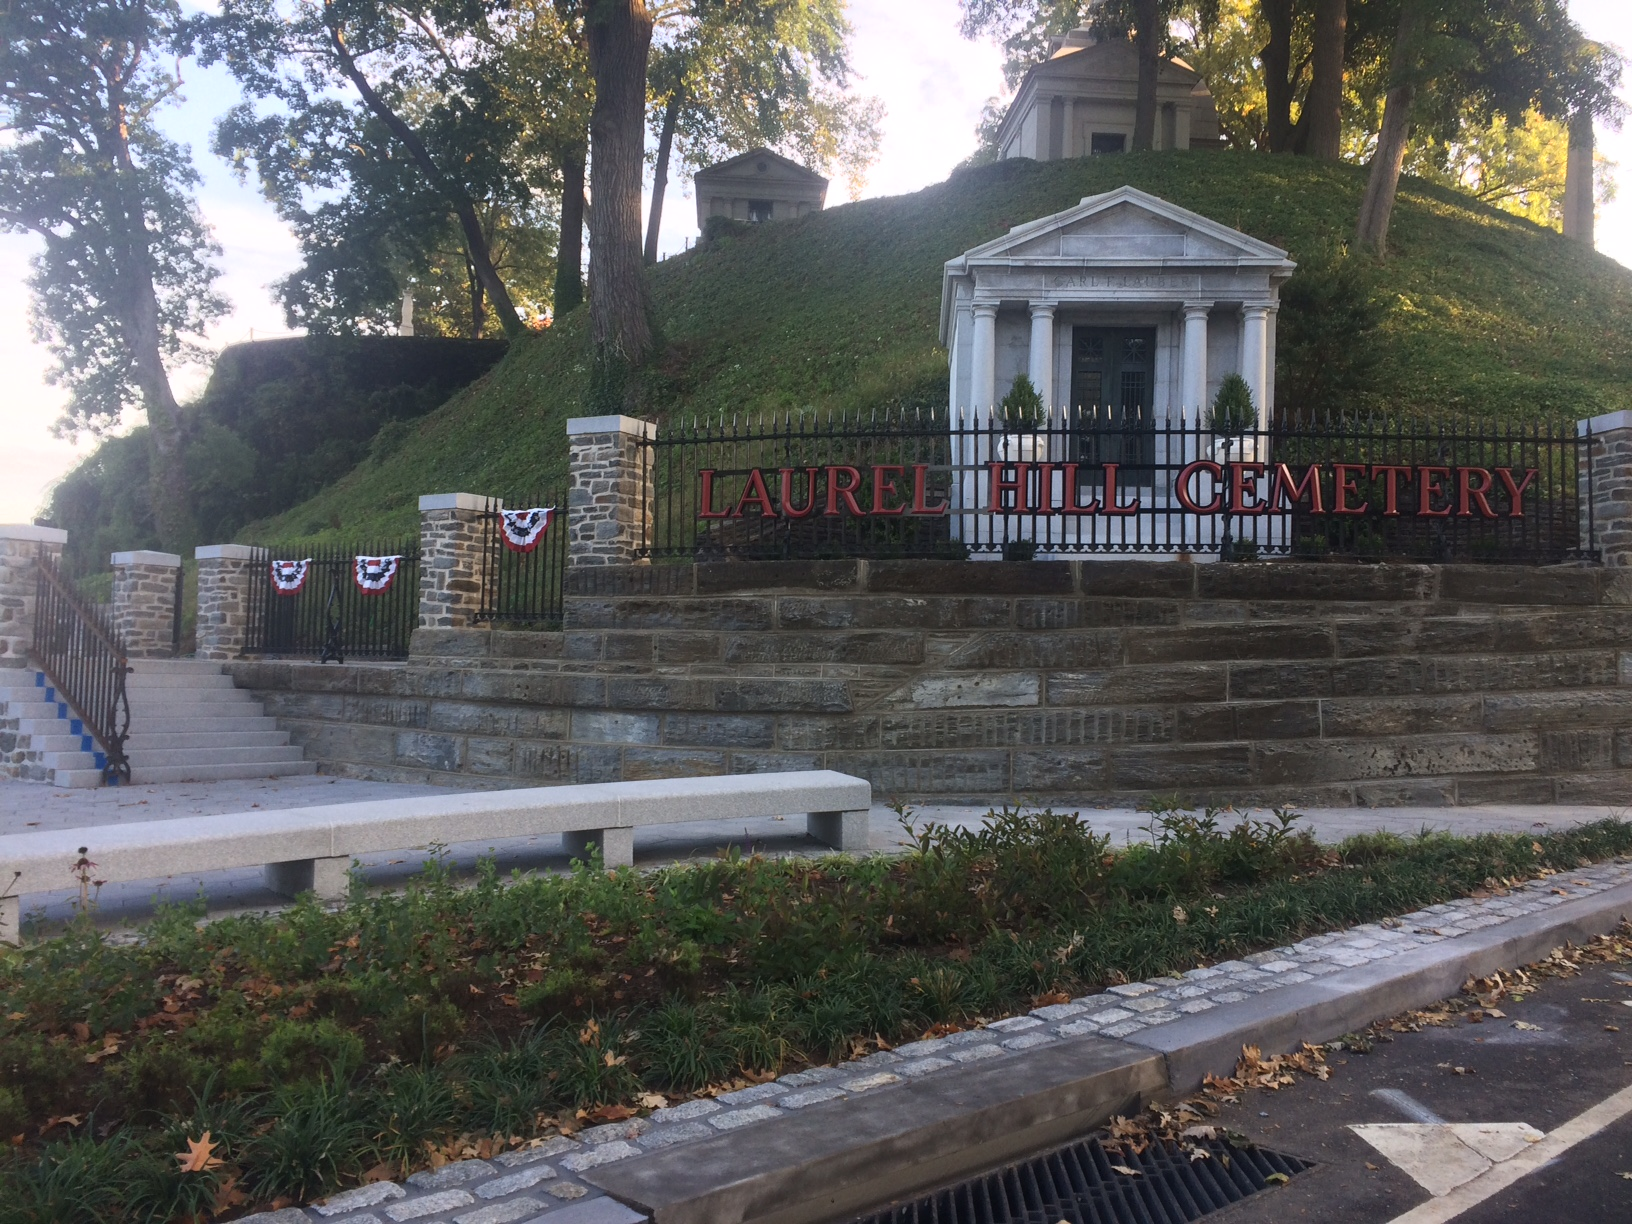 New entrance, landscaping and bench at Laurel Hill Cemetery